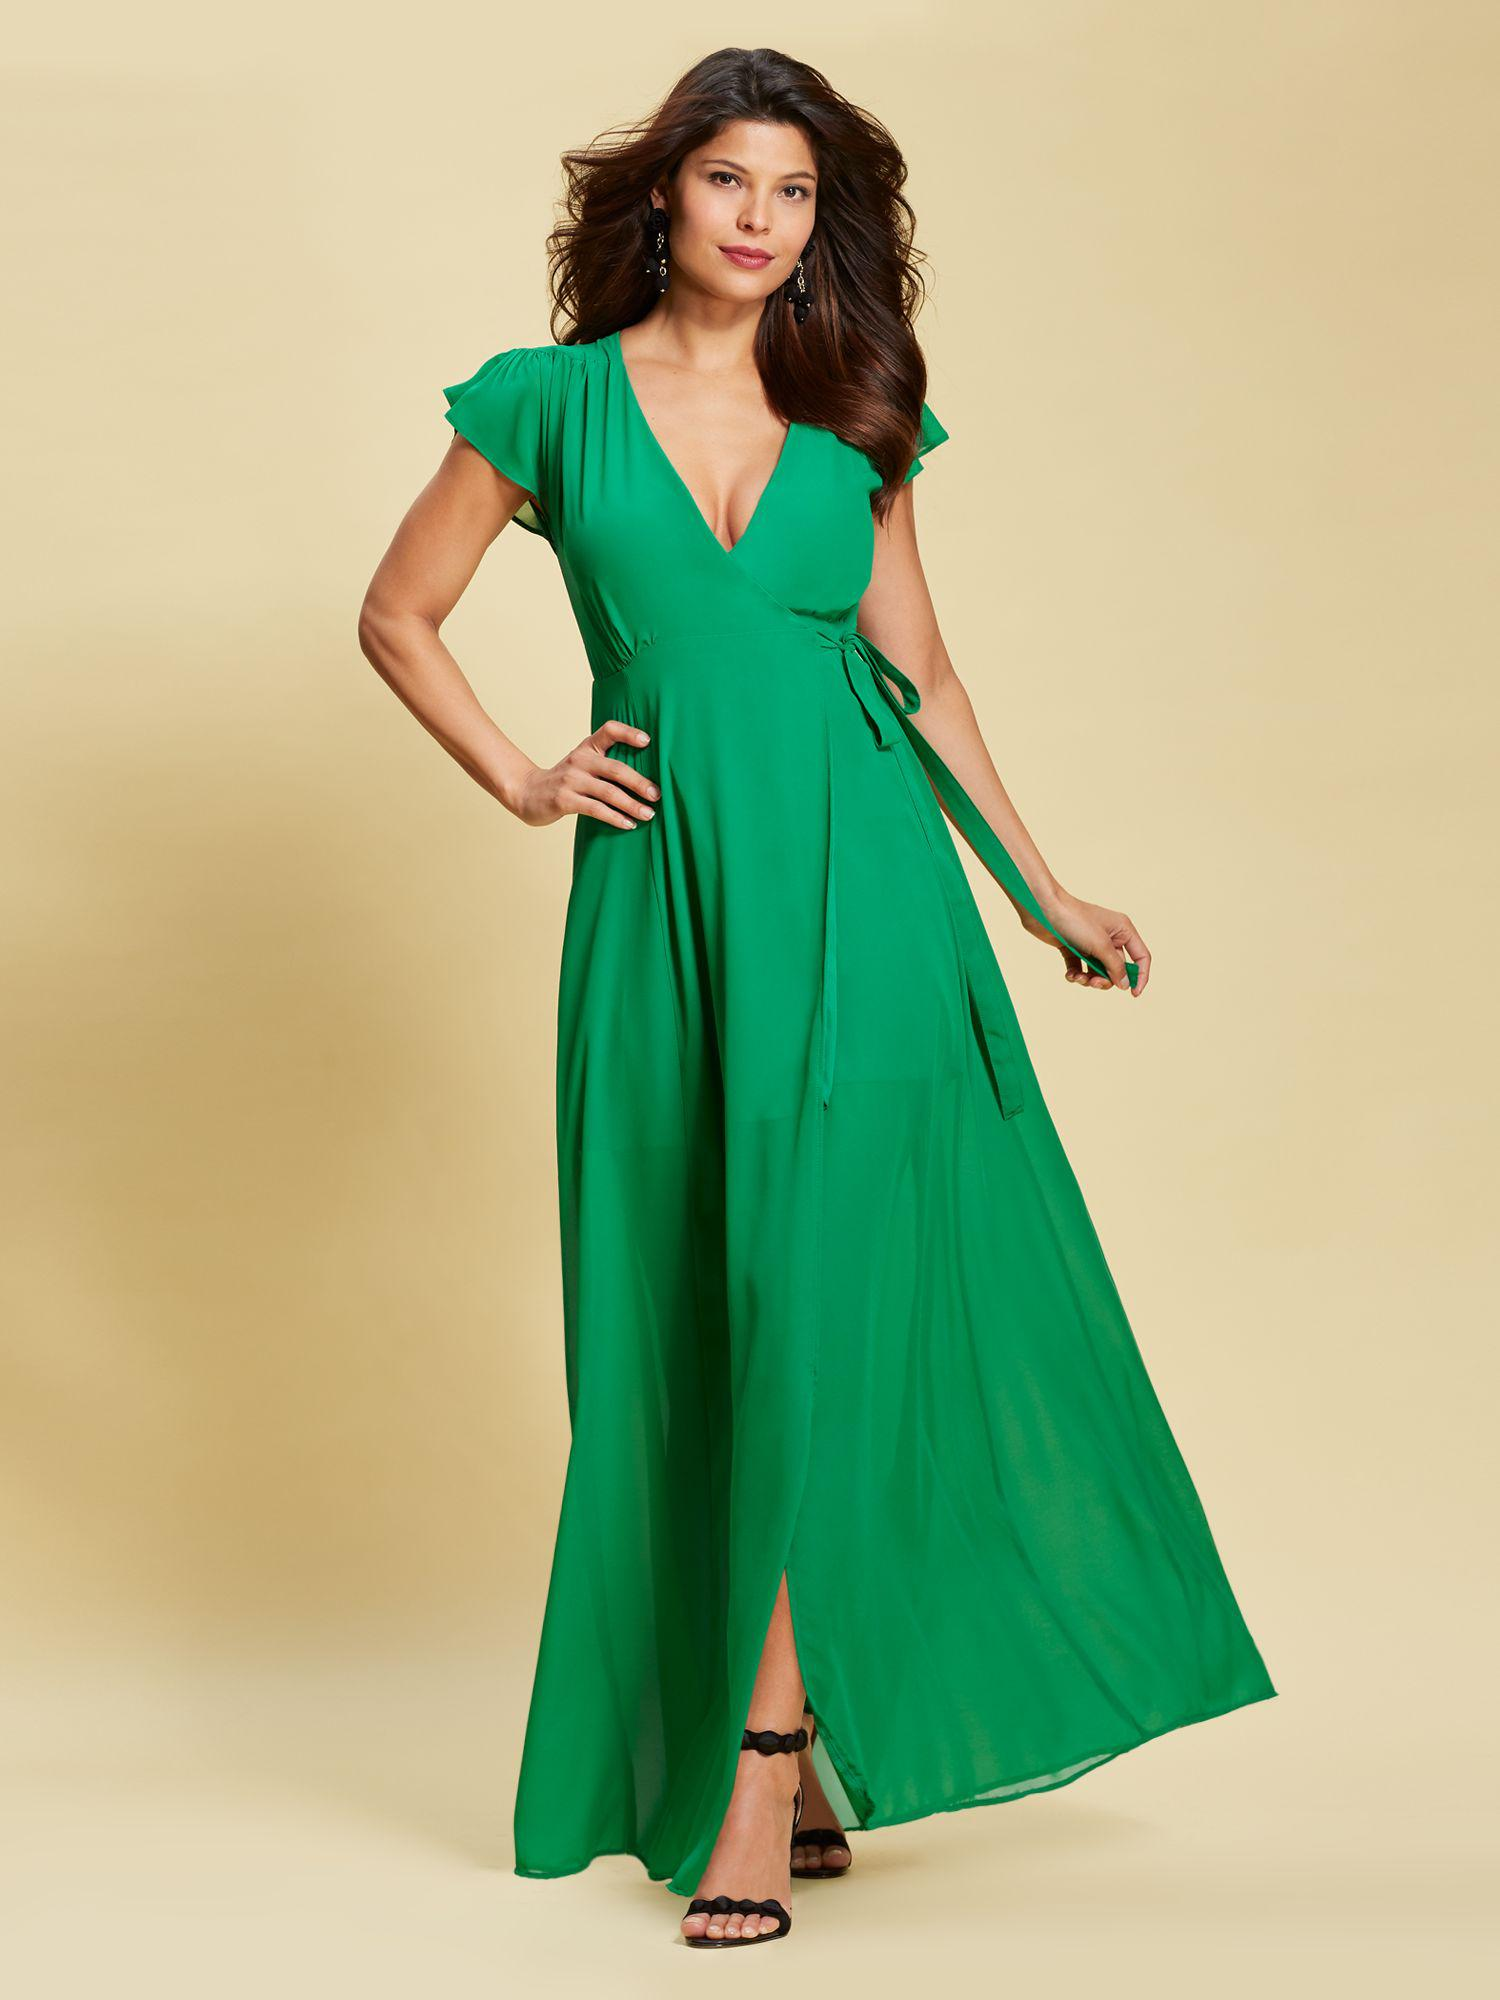 40a75b7aa14 Lyst - New York   Company Eva Mendes Collection - Allison Maxi Dress ...